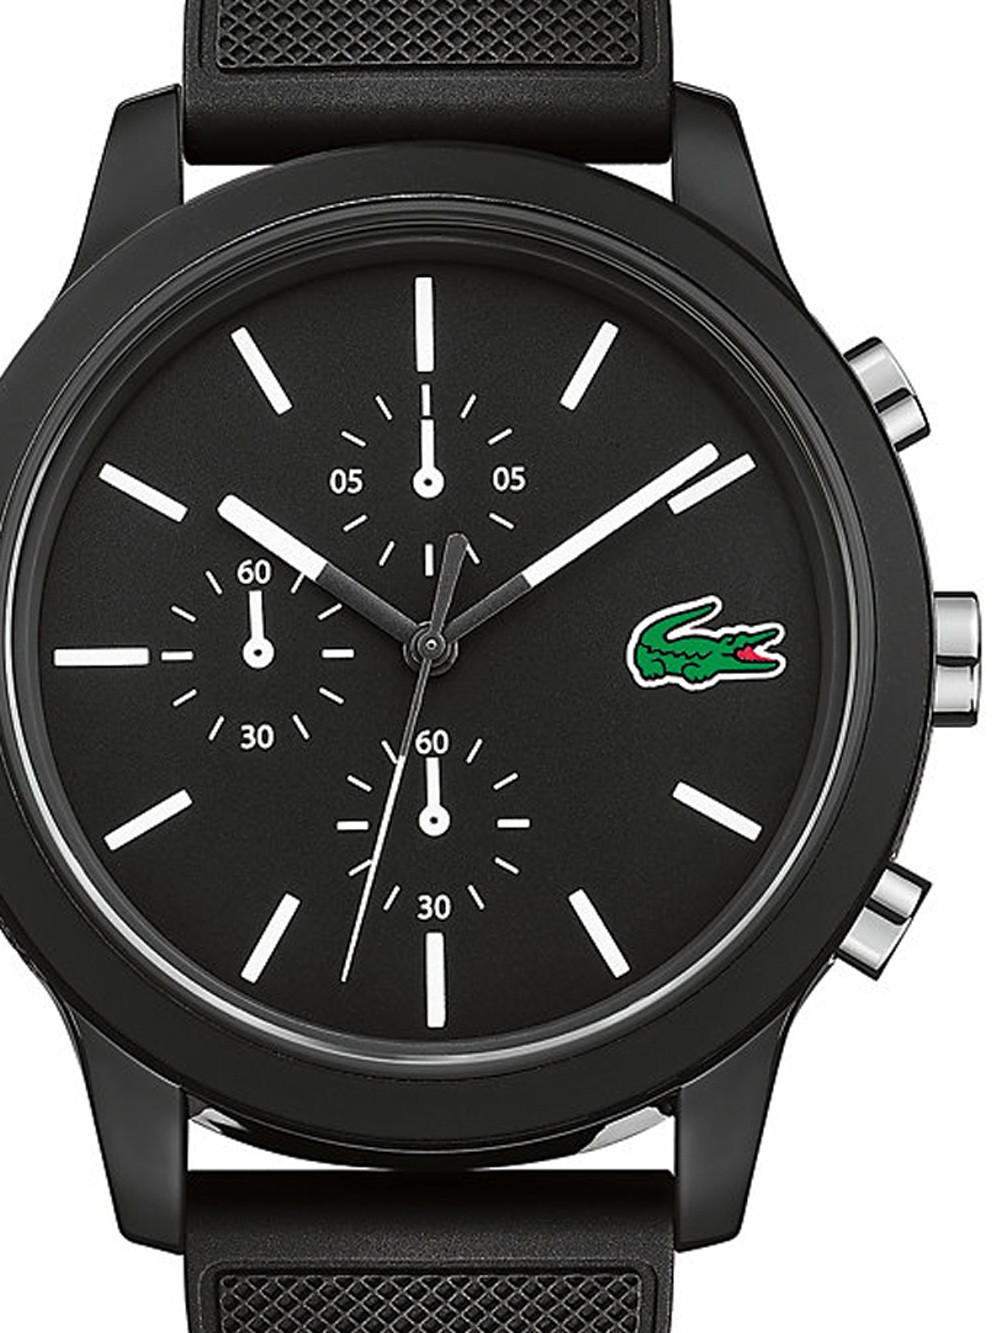 Lacoste 2010972 12.12 Chronograph 44mm 5 ATM